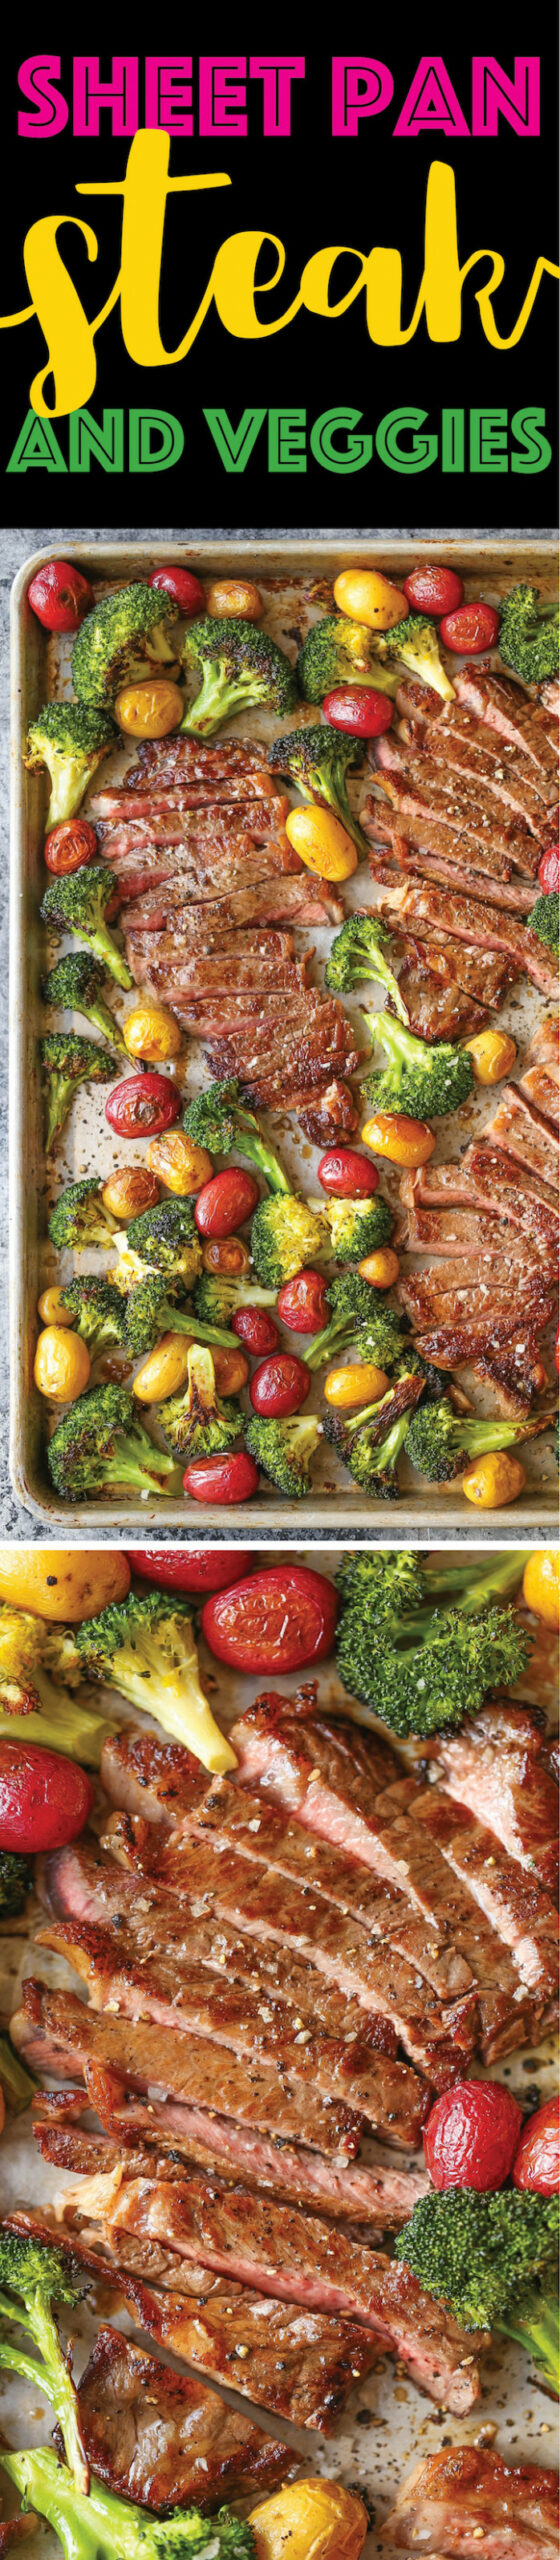 Sheet Pan Steak and Veggies - dinner recipes steak